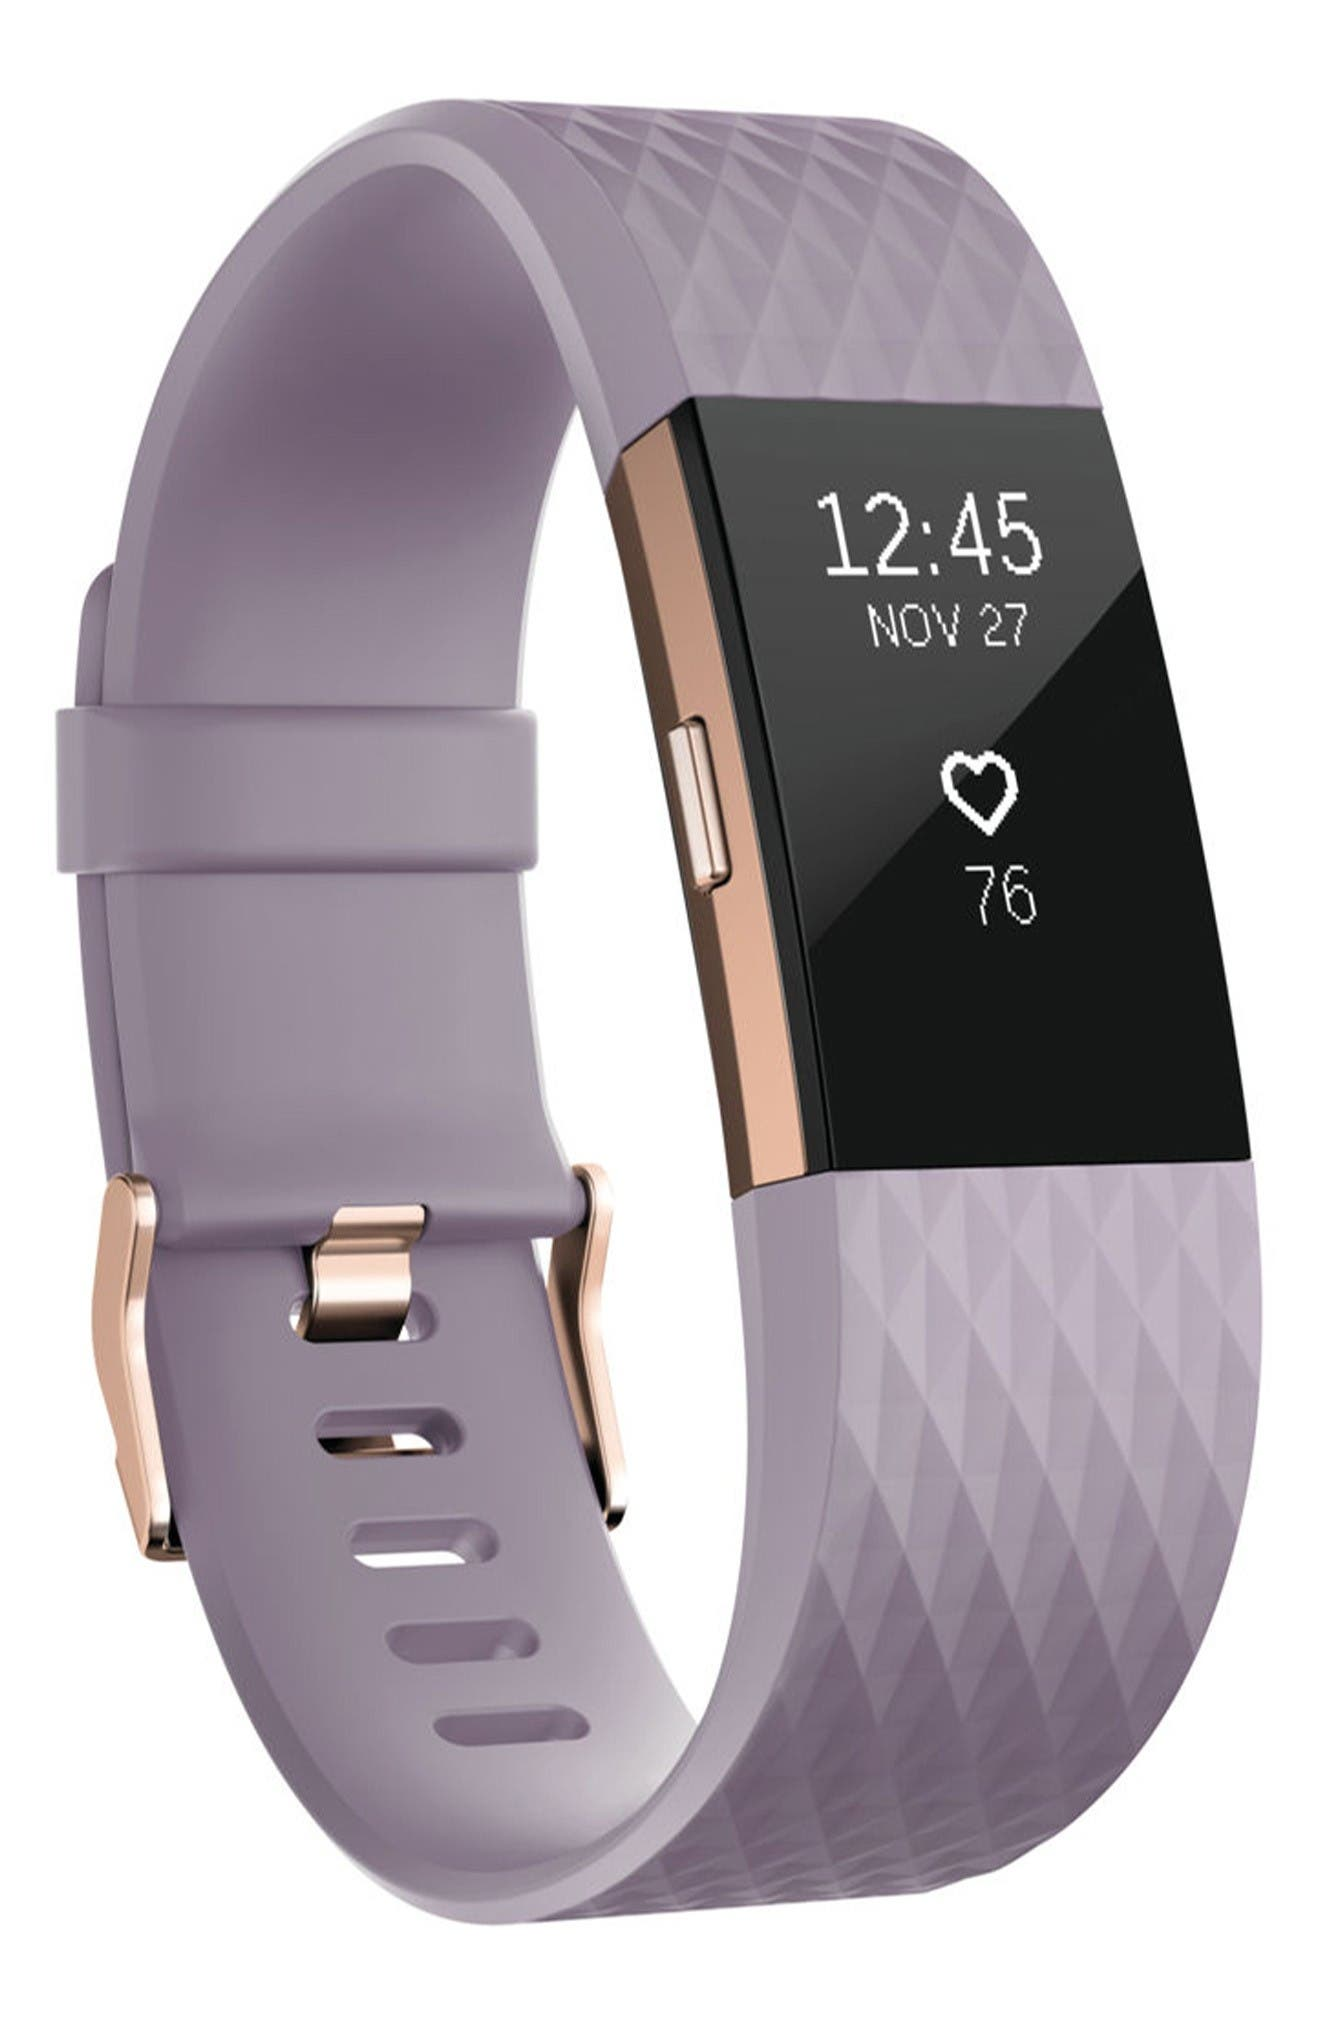 Main Image - Fitbit Charge 2 Special Edition Wireless Activity & Heart Rate Tracker